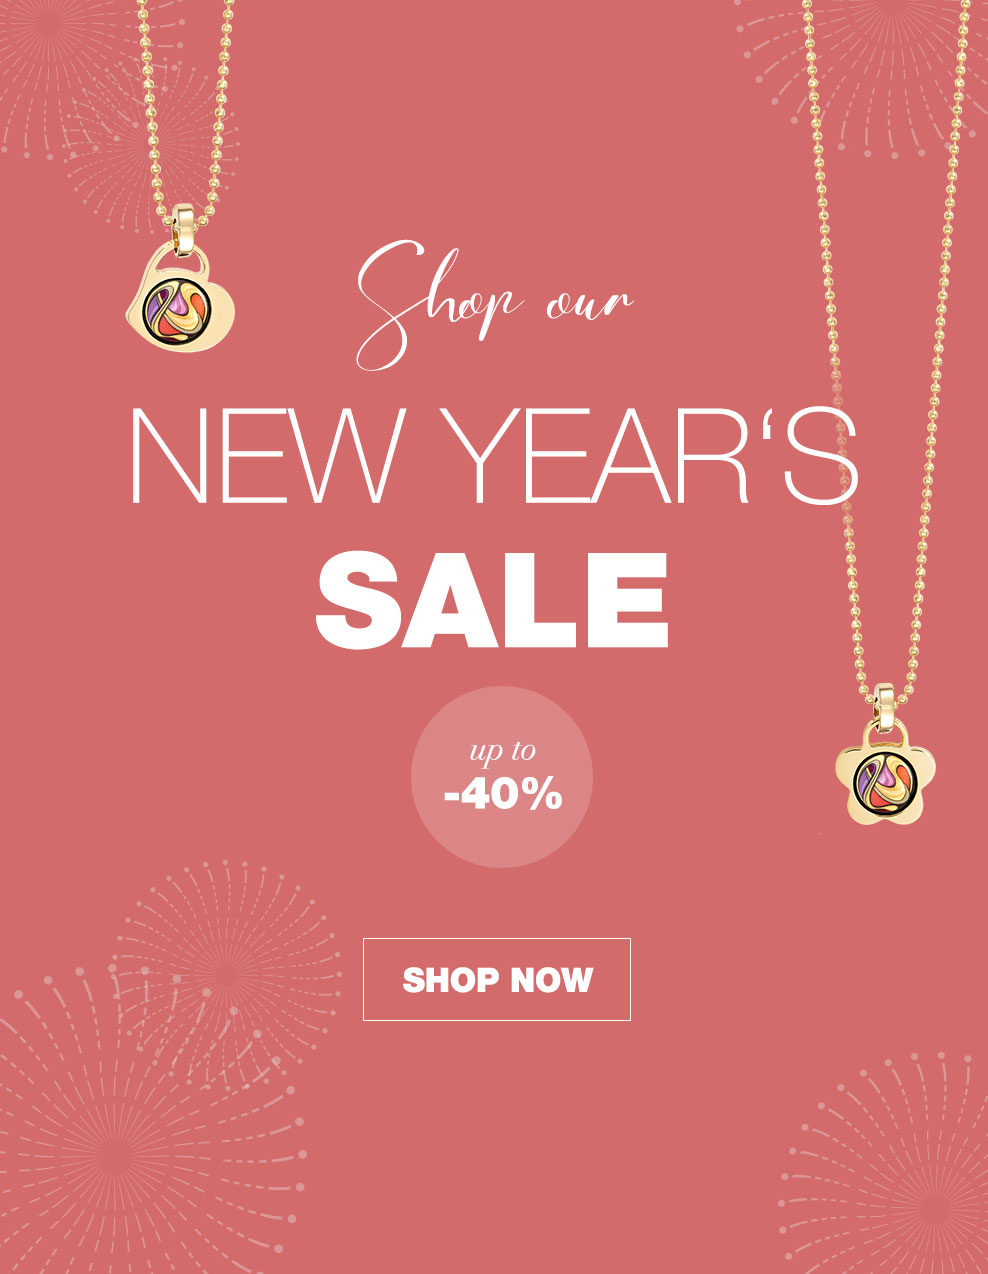 Click to shop NEW YEAR'S SALE!